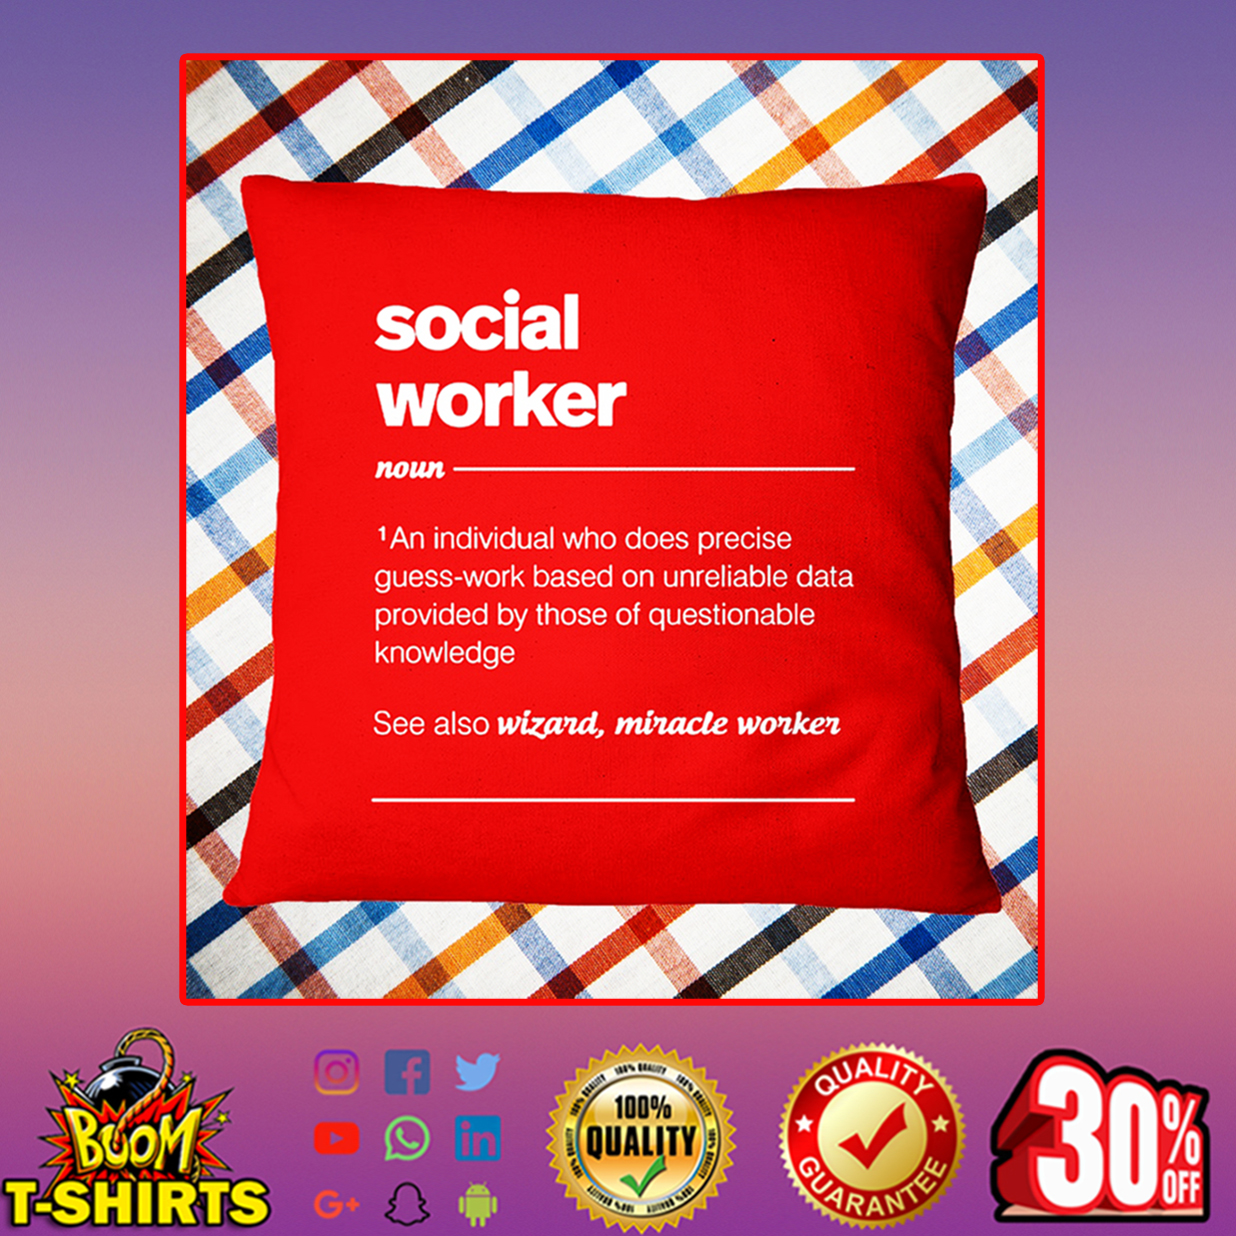 Social worker an individual who does precise guess-work based Pillowcase - true red